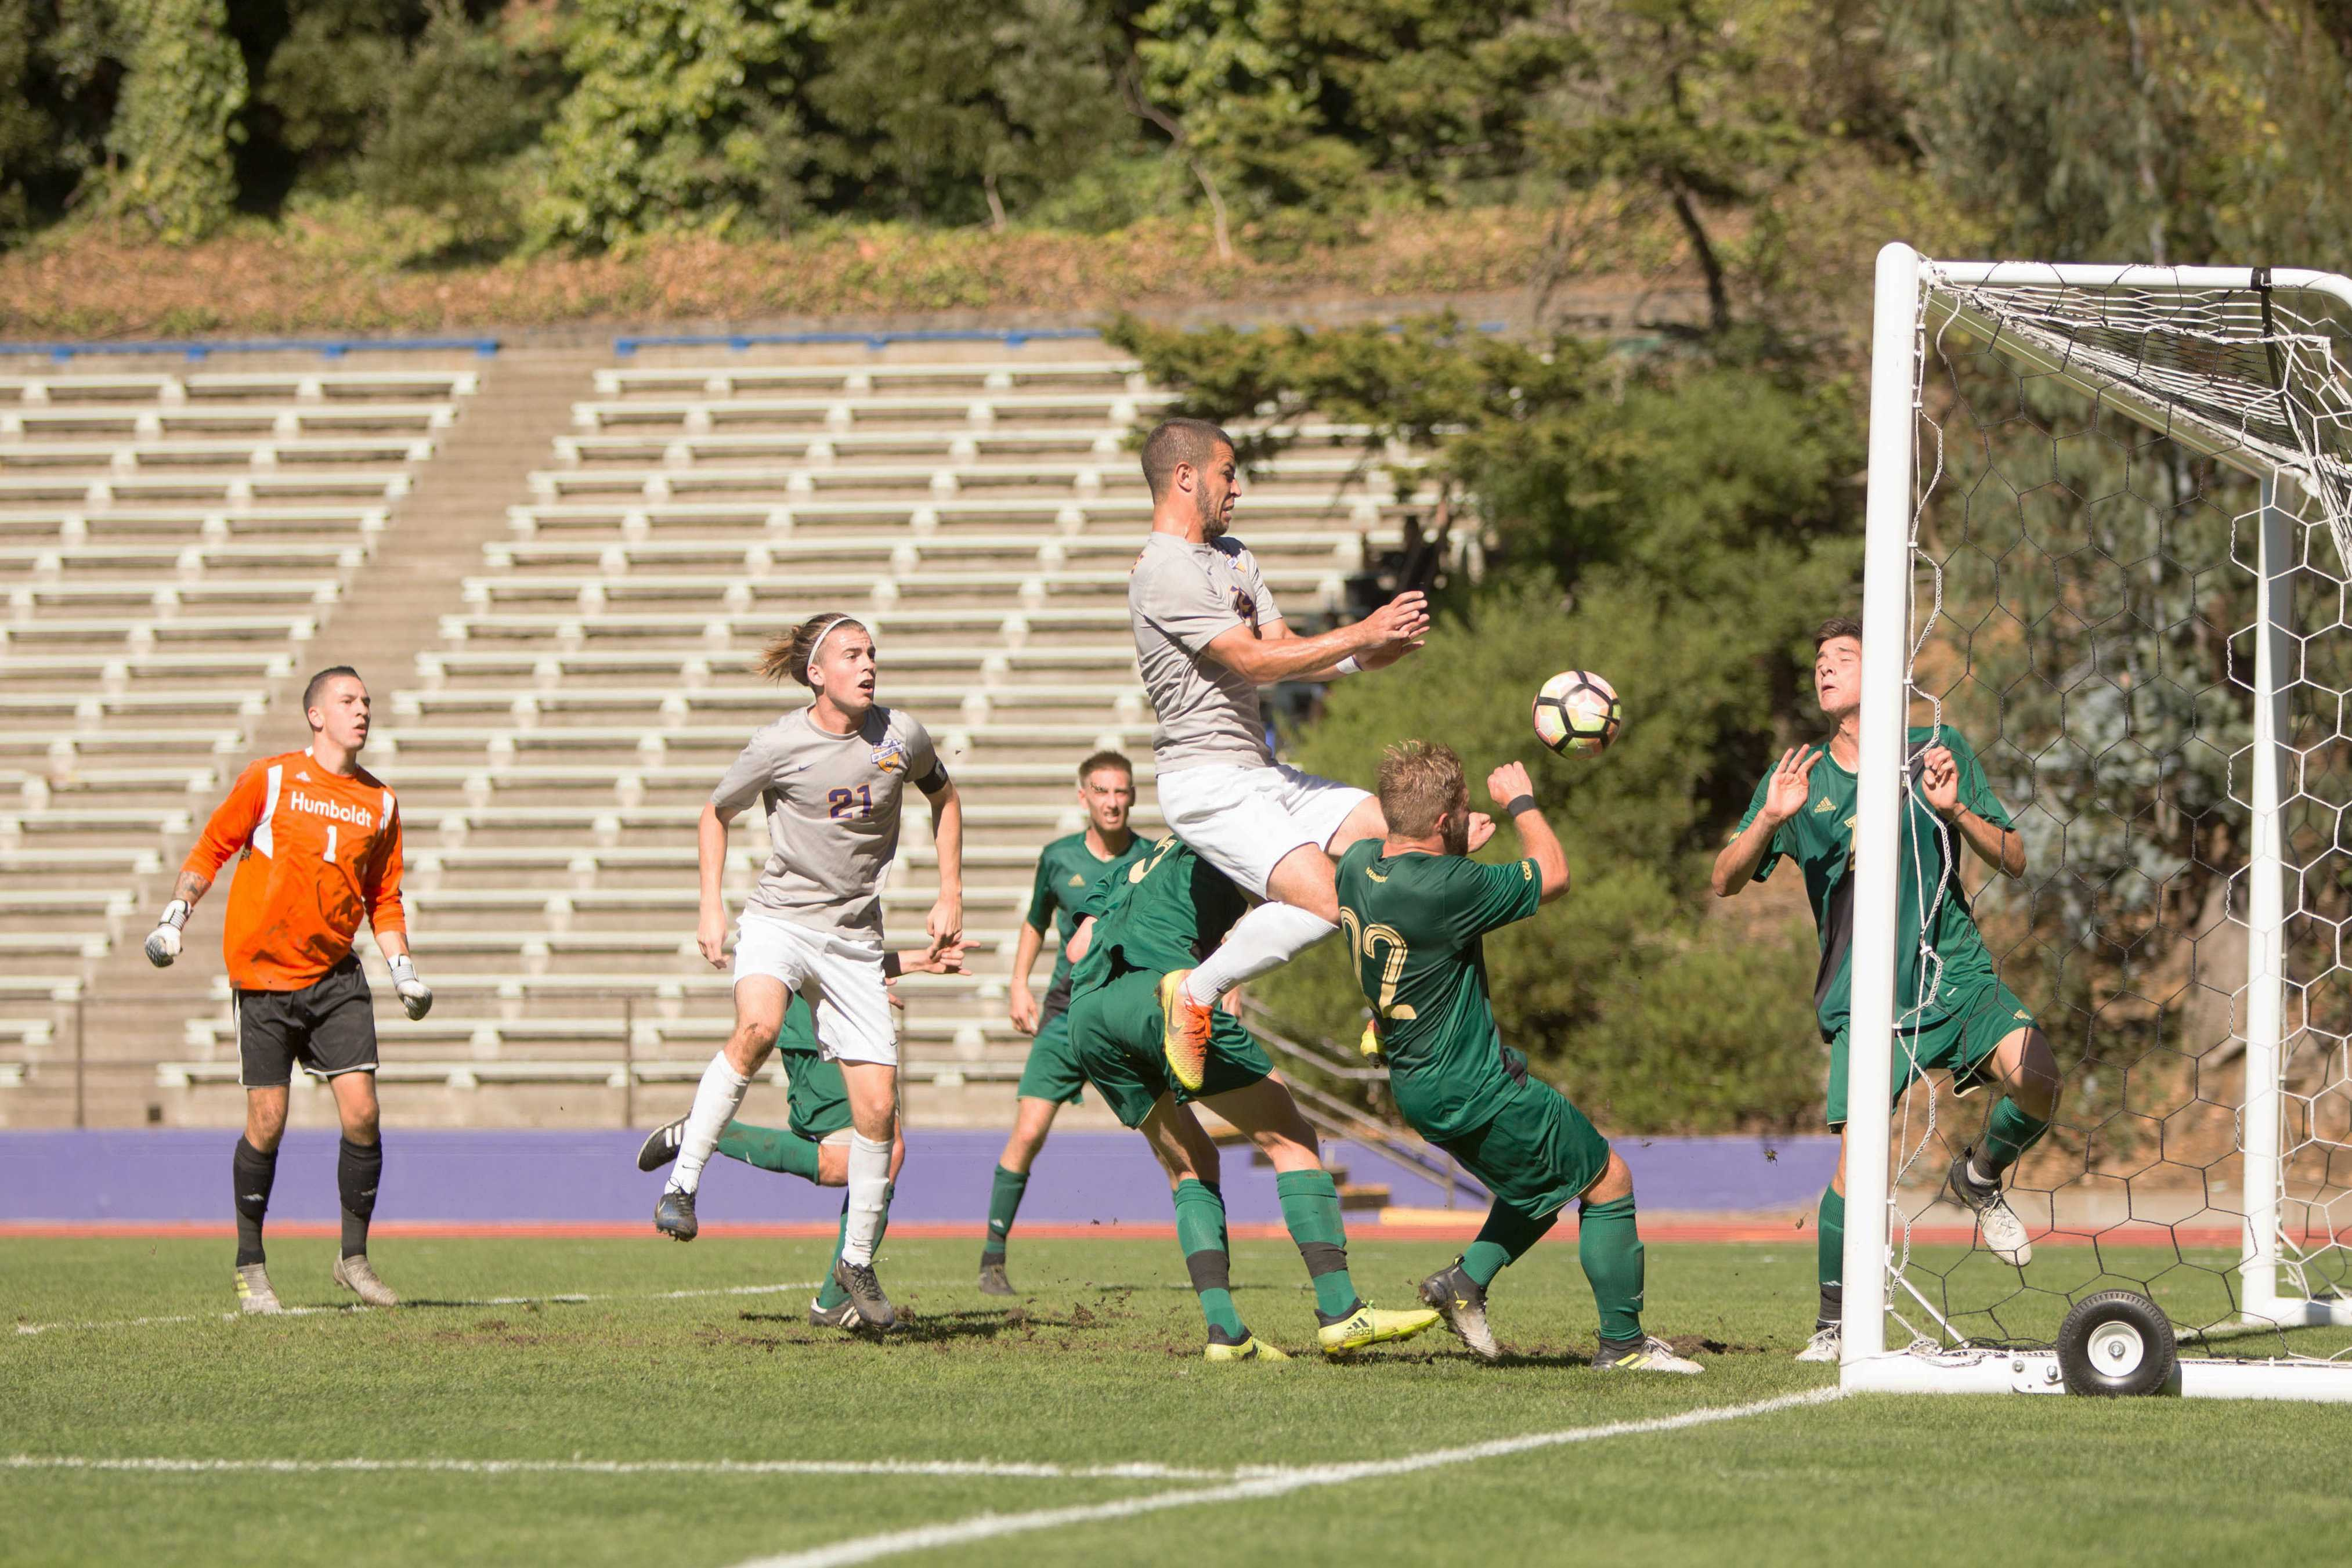 Tariq Pulskamp (#19) heads the ball into the goal against Humboldt State at Cox Stadium in San Francisco on Wednesday, October 25, 2017. Pulskamp scored his 5th goal of the season. (Mitchell Mylius/Golden Gate Xpress)